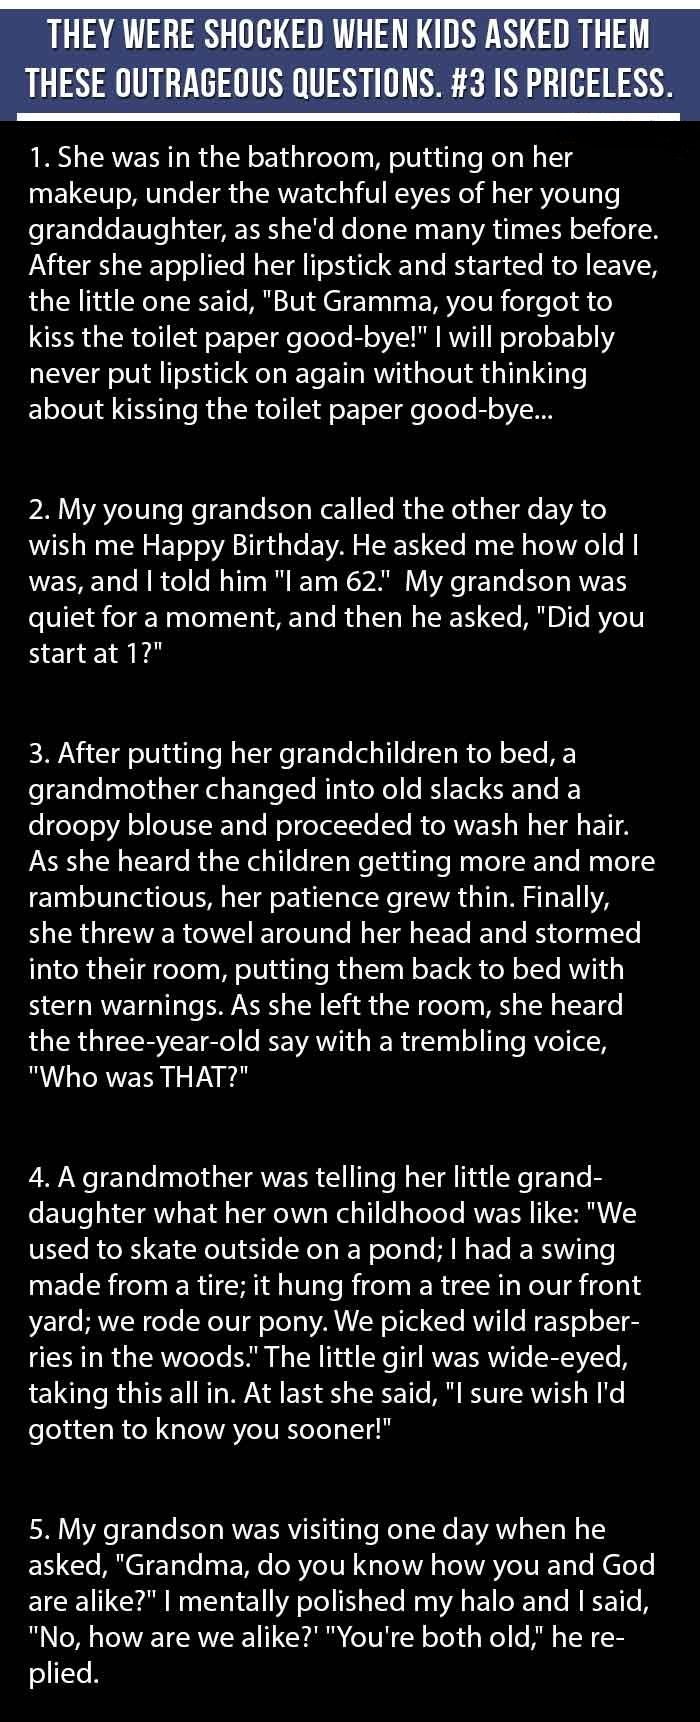 They Were Shocked When Their Grandkids Asked Them These Crazy Questions.